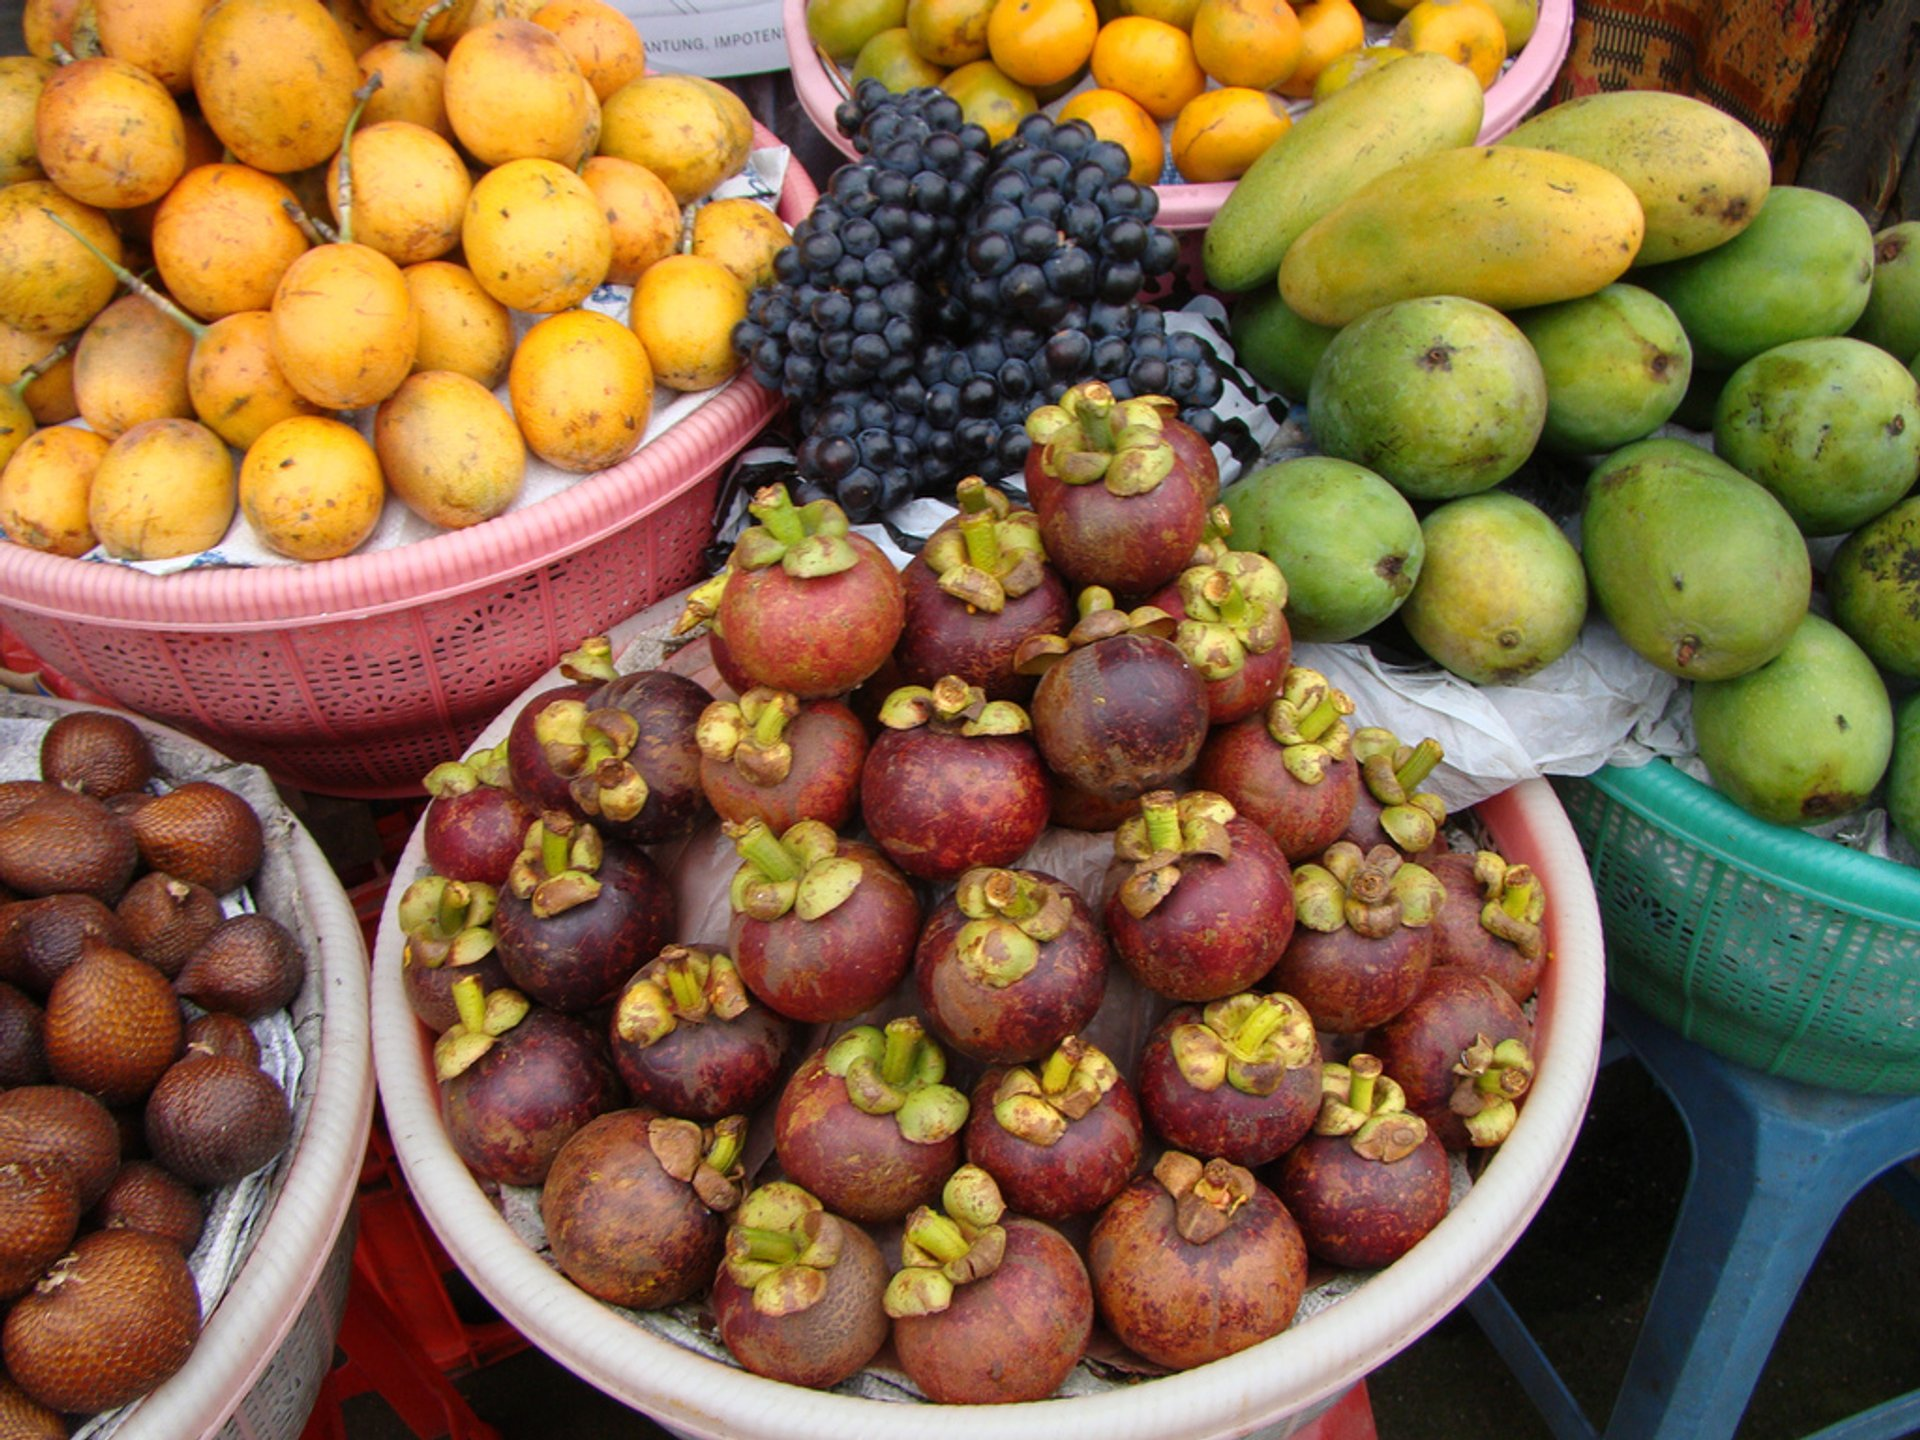 Mangosteen in Bali - Best Season